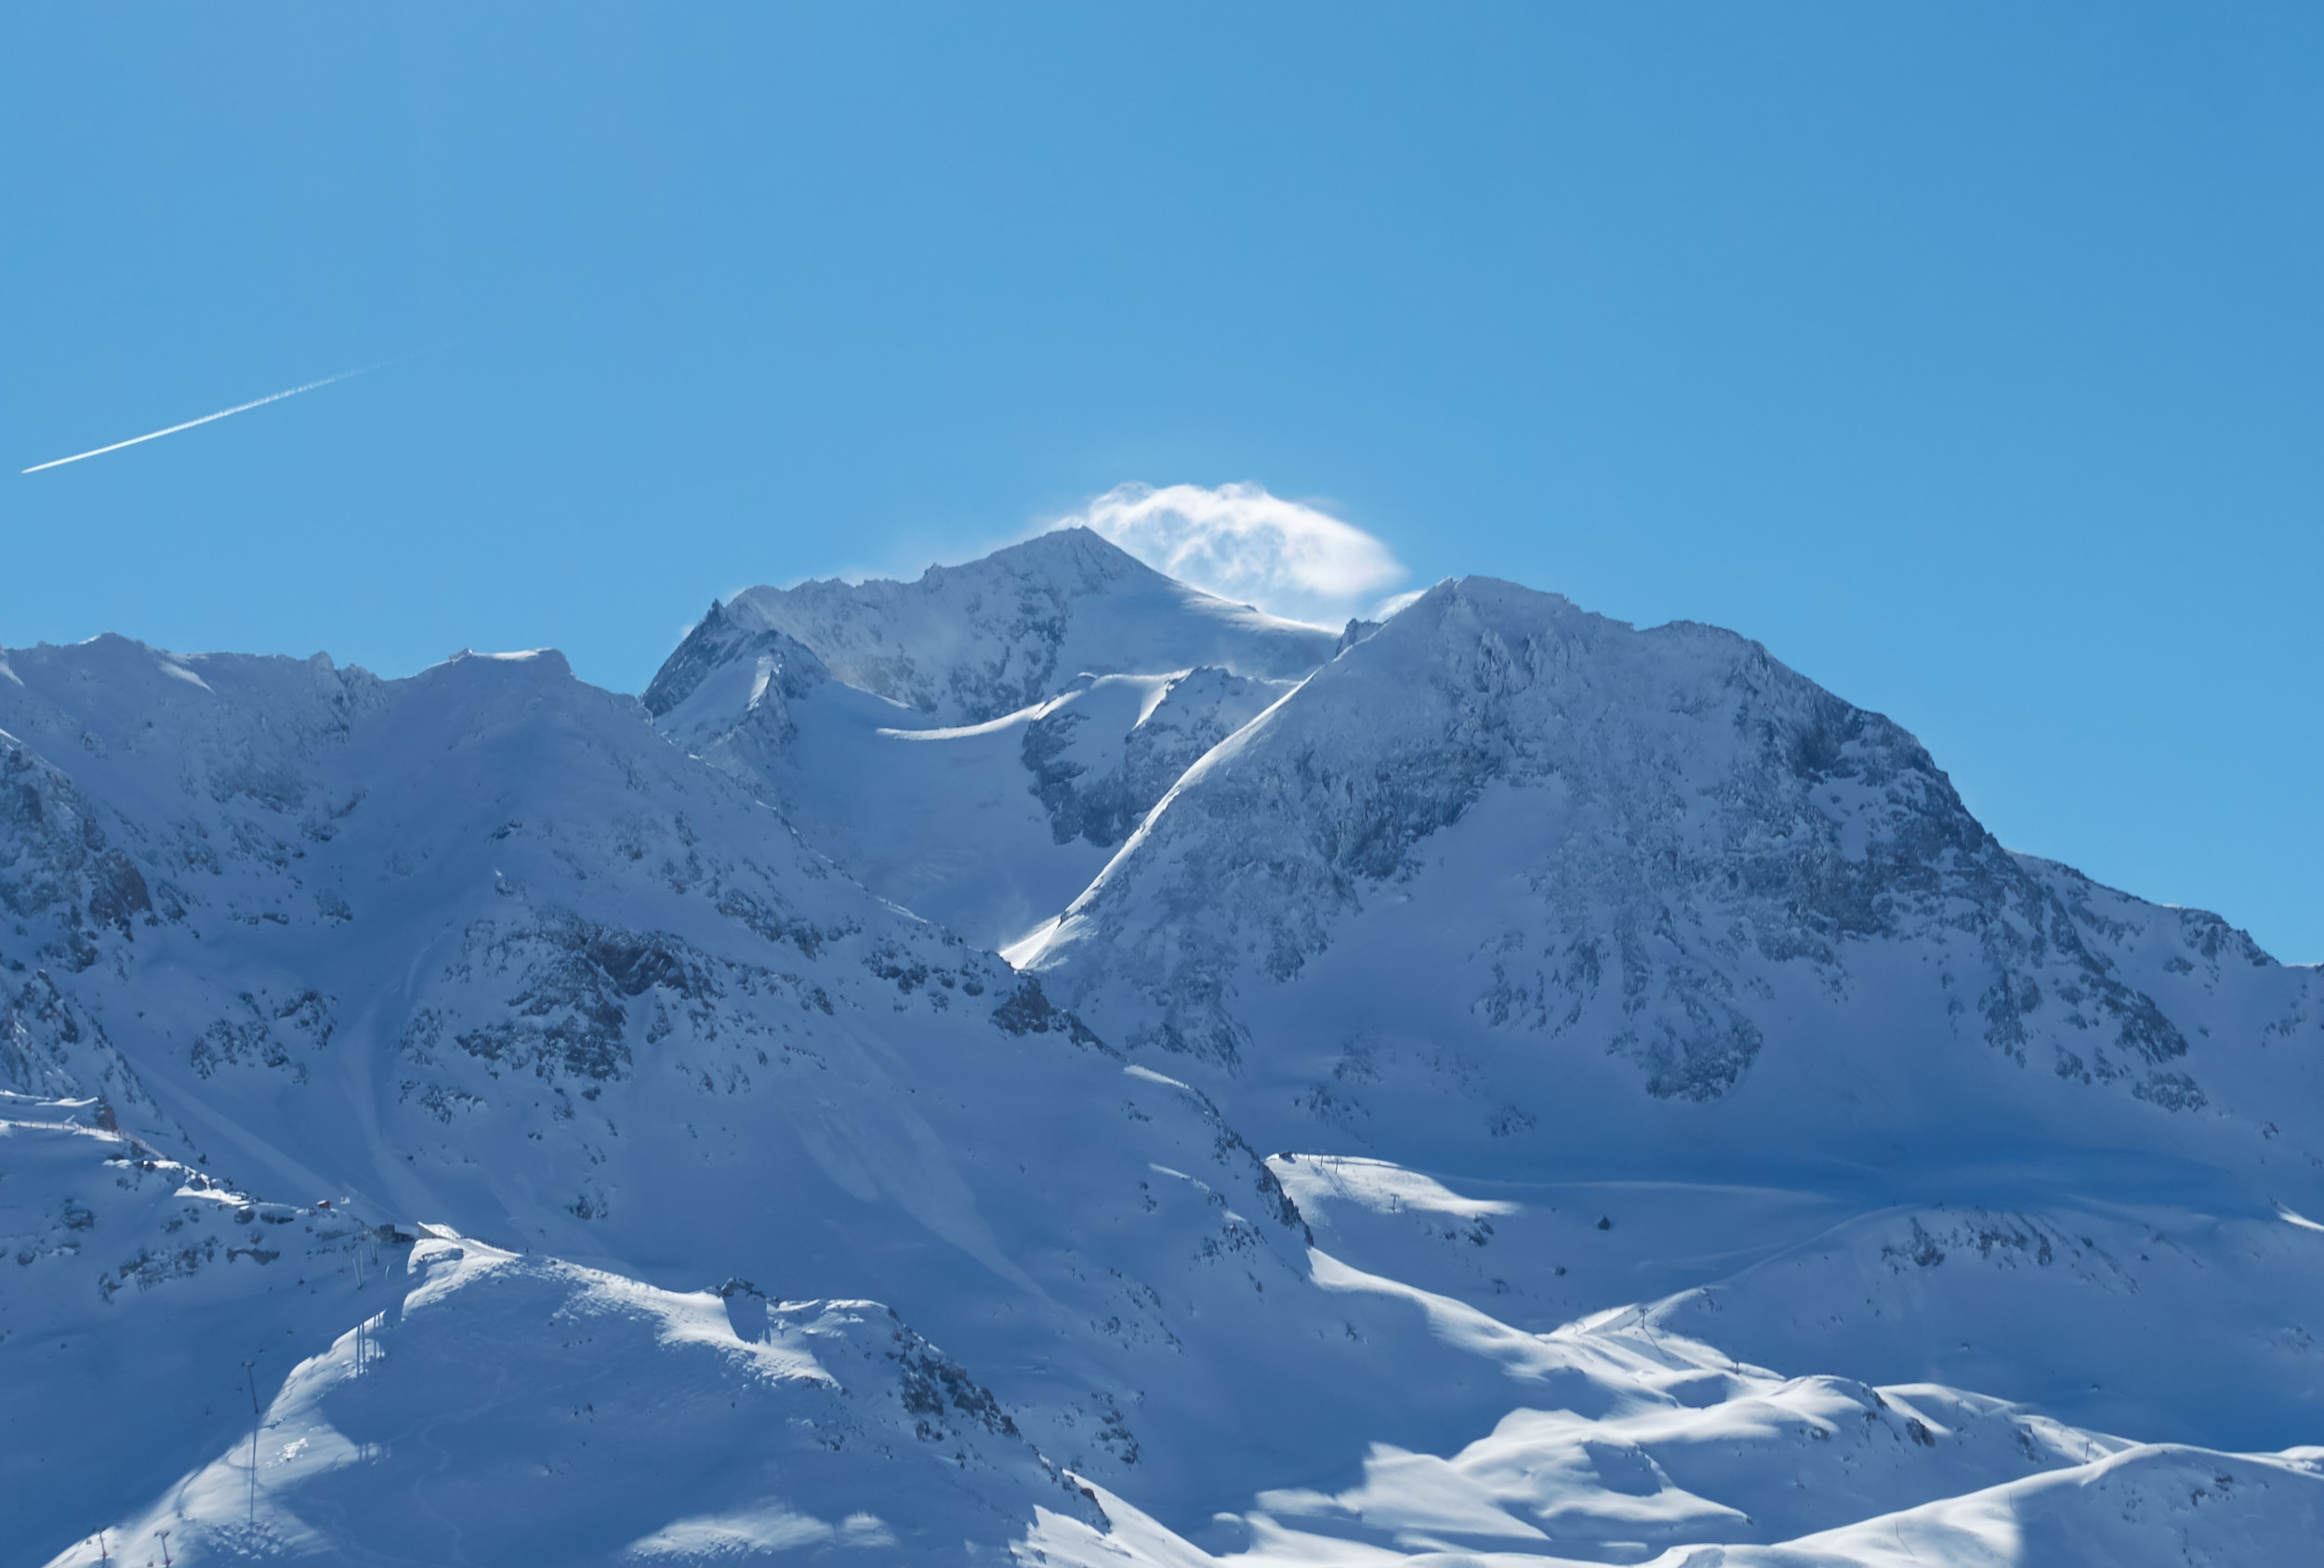 Avalanche control: snow powder rising after a controlled avalanche release explosion.